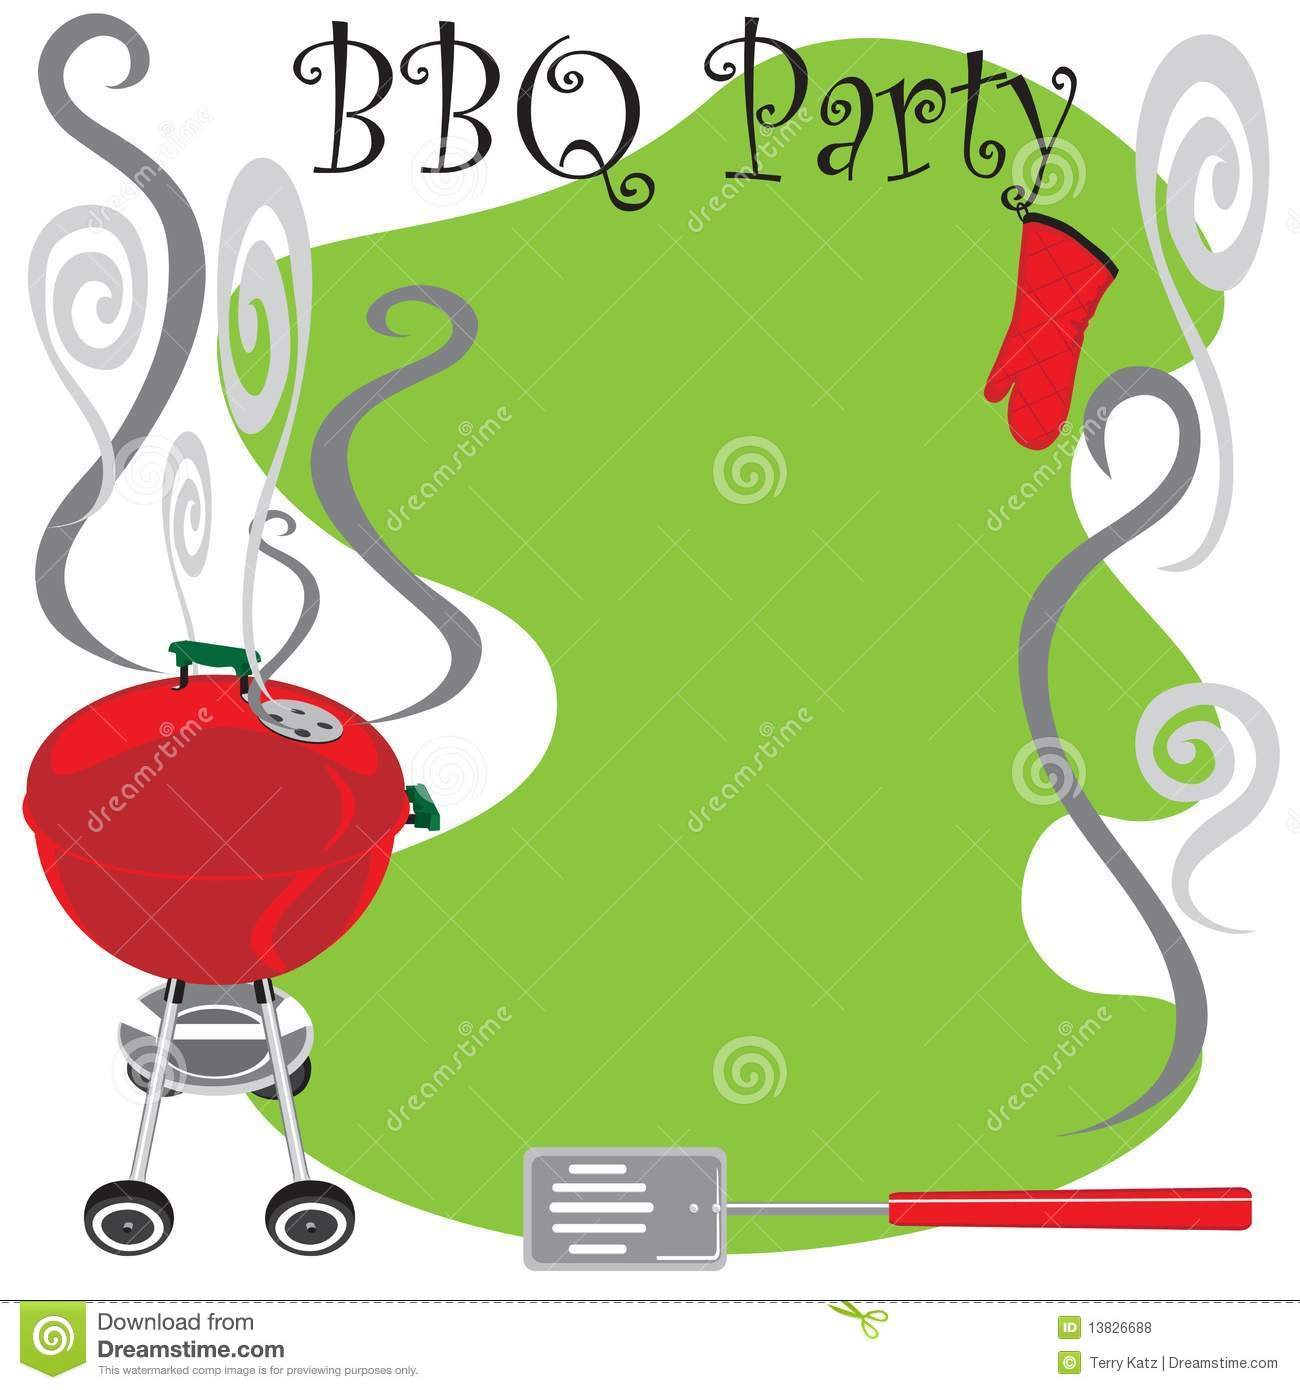 bbq party invitation stock vector illustration of party 13826688. Black Bedroom Furniture Sets. Home Design Ideas